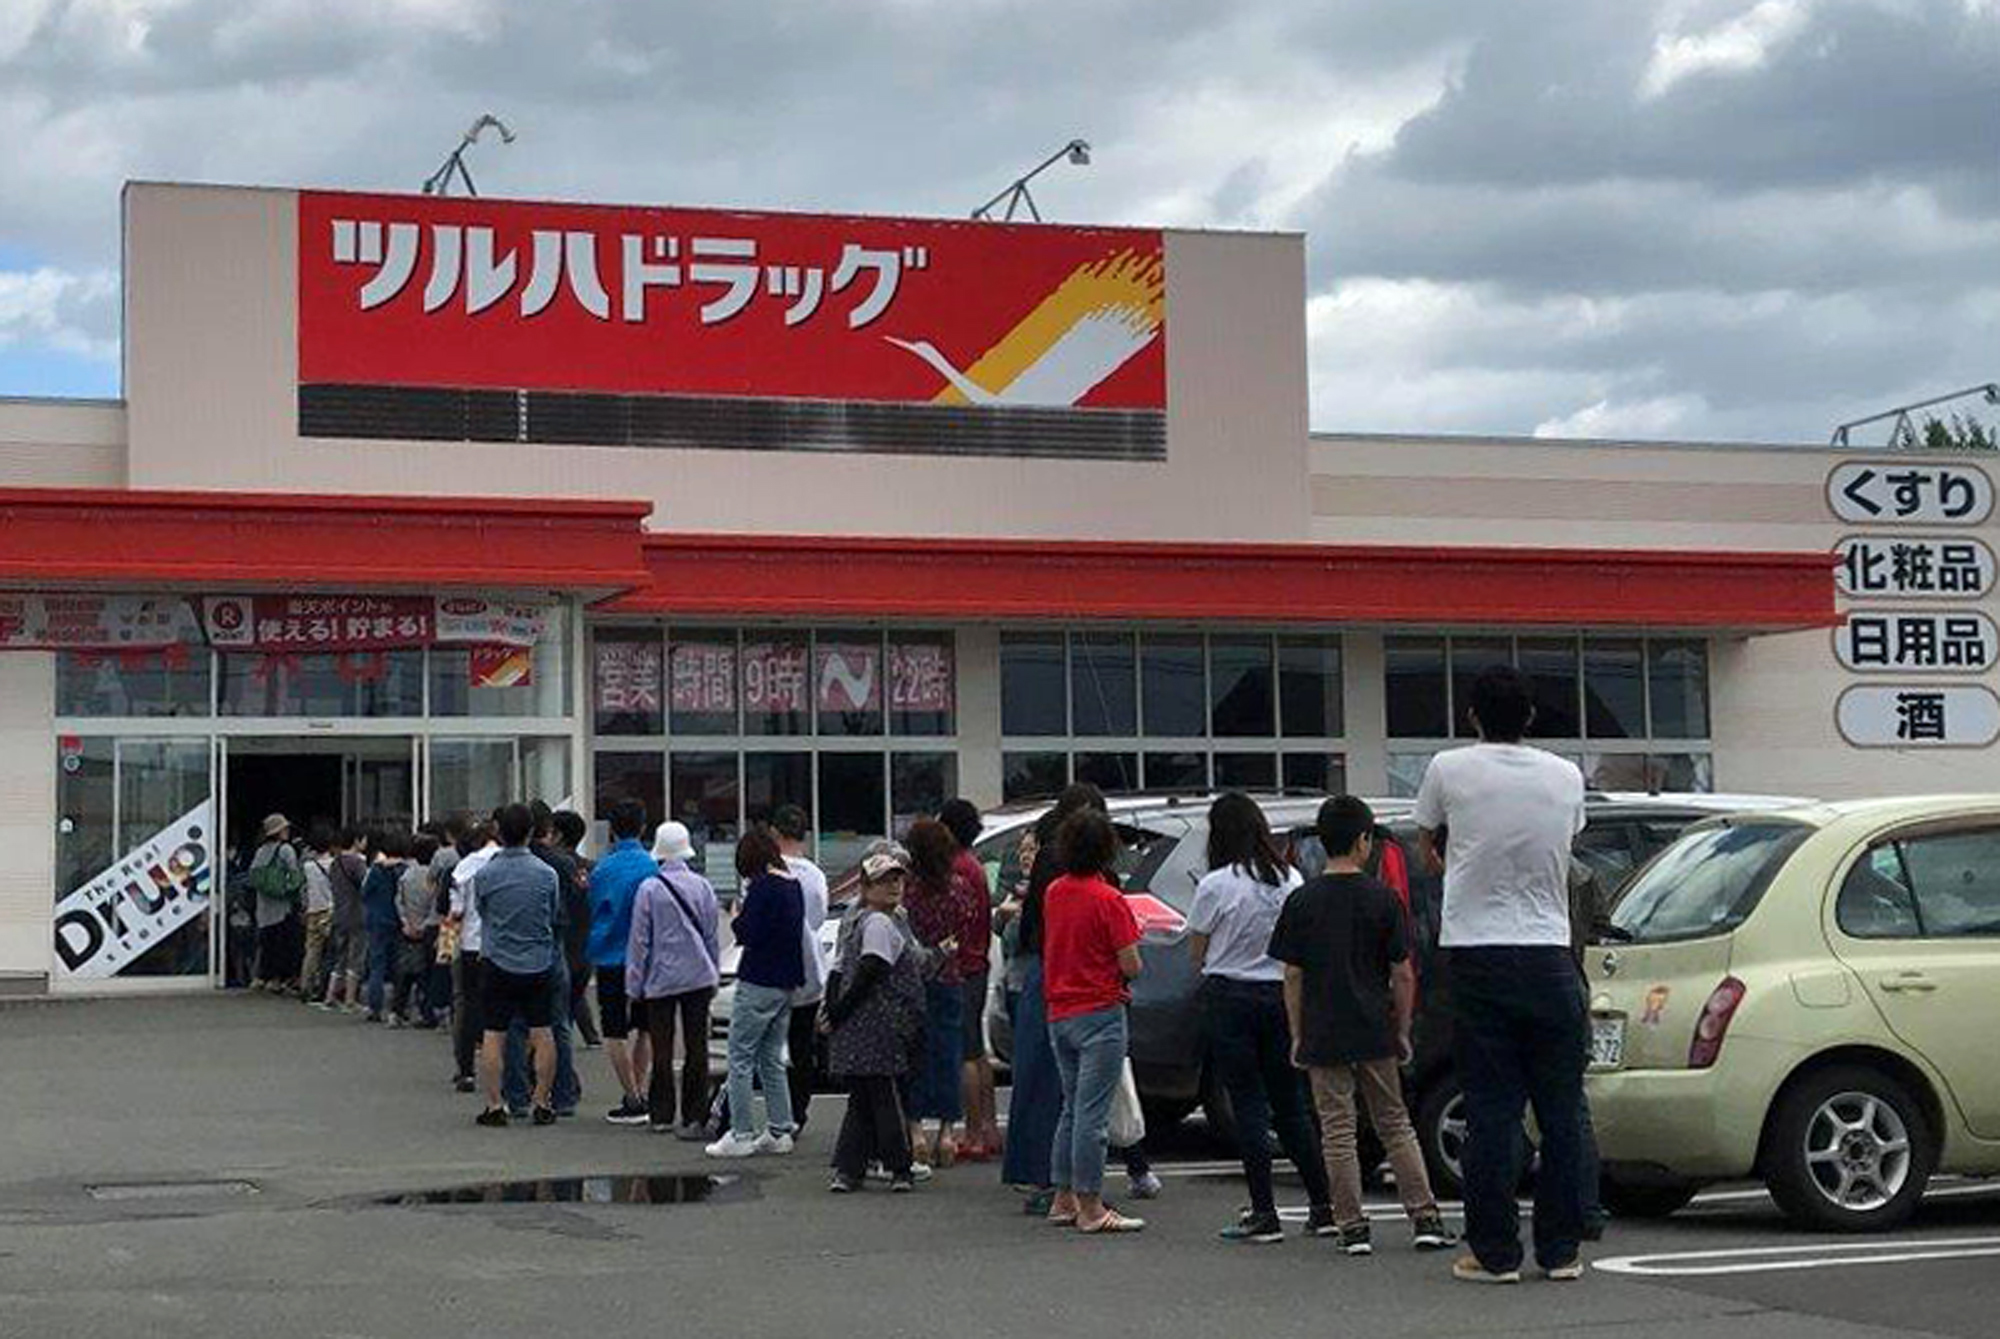 People line up outside a supermarket due to rush to buy supplies after an earthquake, in Biei town, Hokkaido, northern Japan.